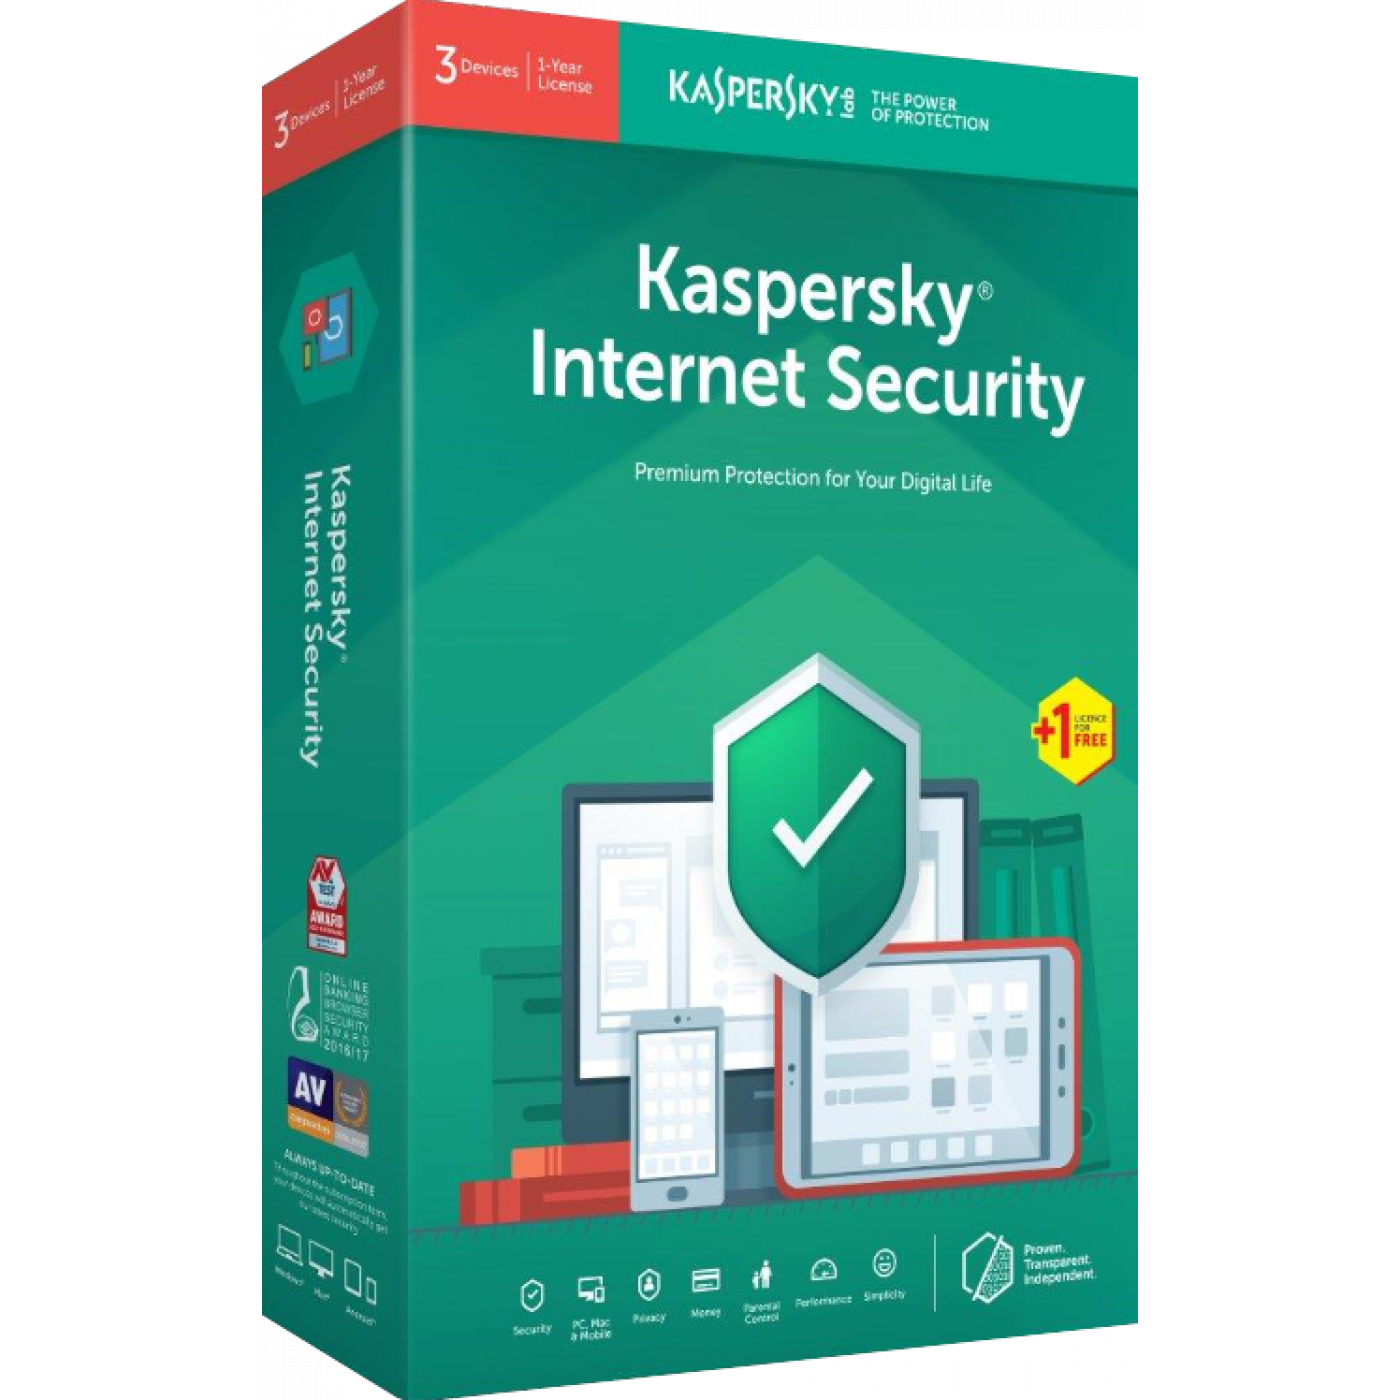 Kaspersky IS 1 + 1 DV 1 Year.